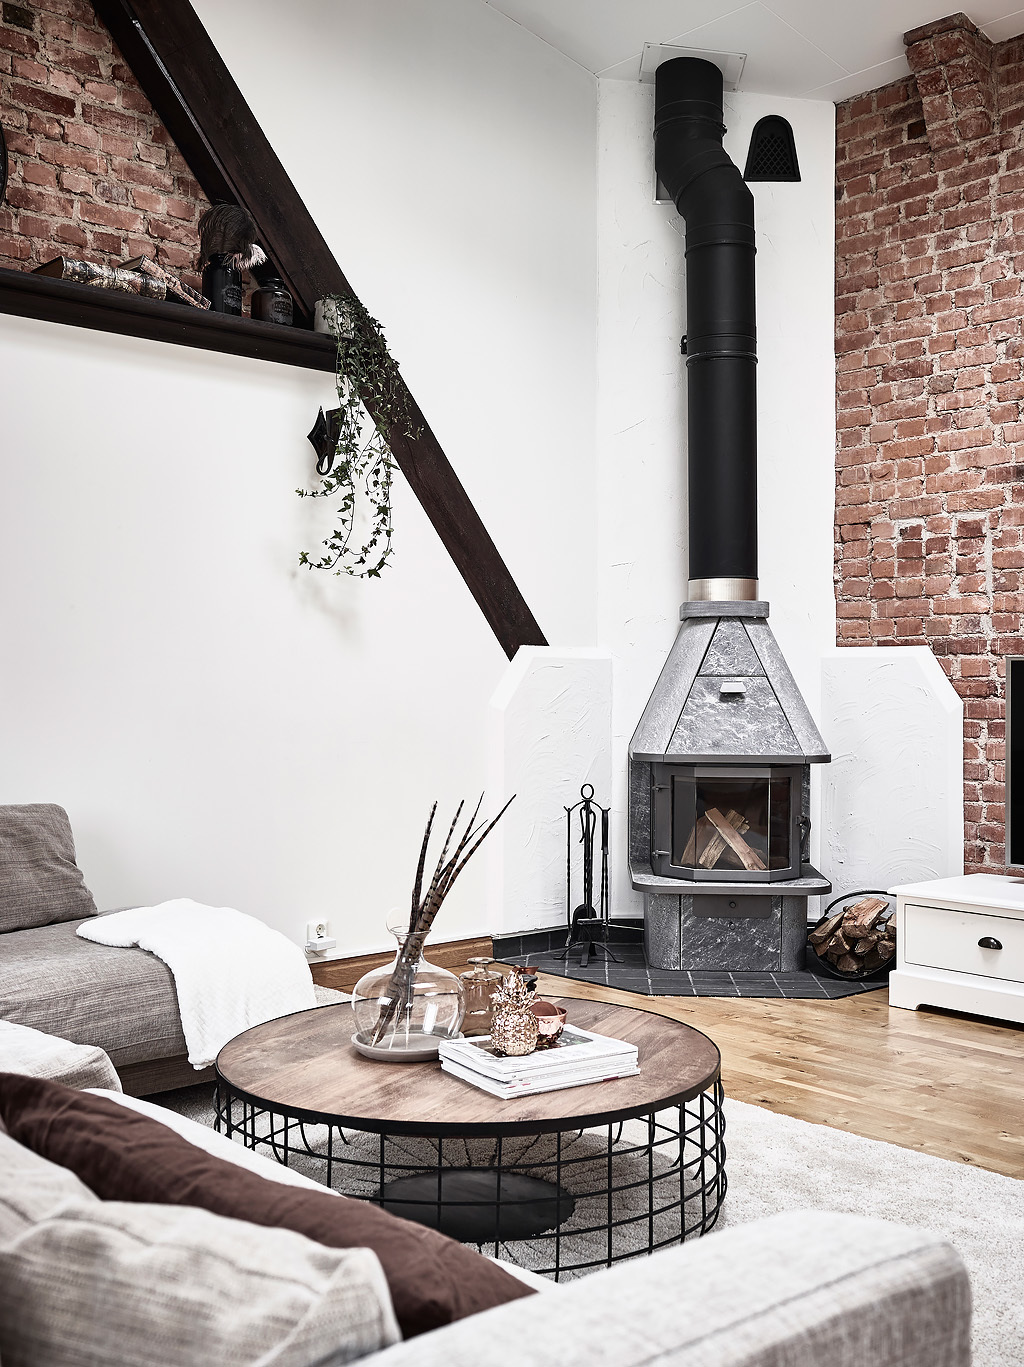 Salon Con Chimenea Decorar Salones Con Chimenea Gallery Of Interesting Decoracion